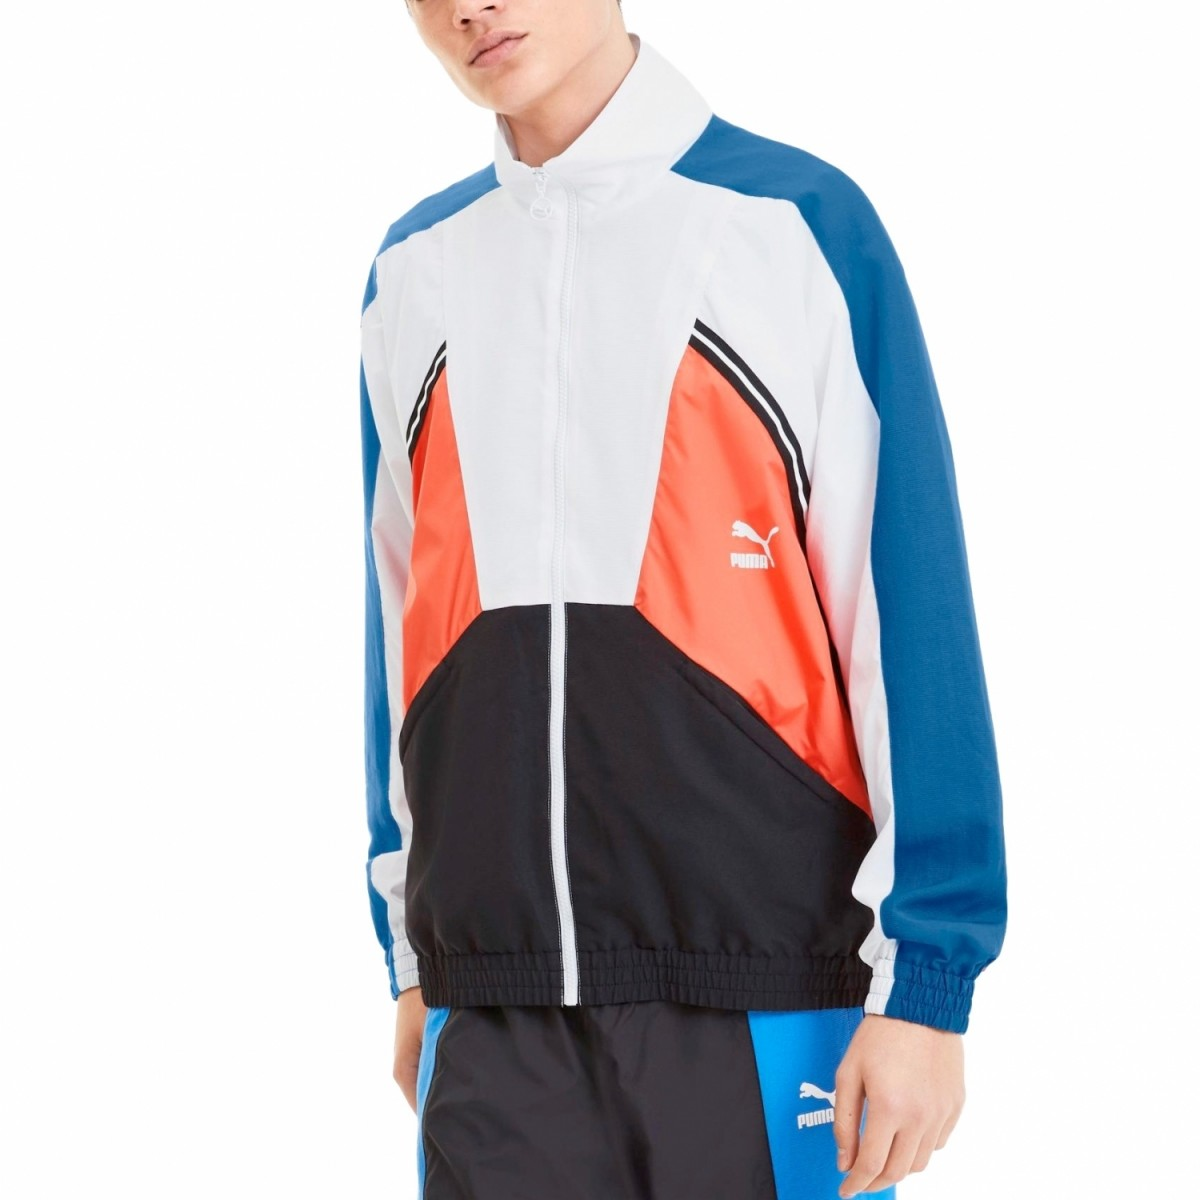 Puma Tailored for Sport Woven Jacket